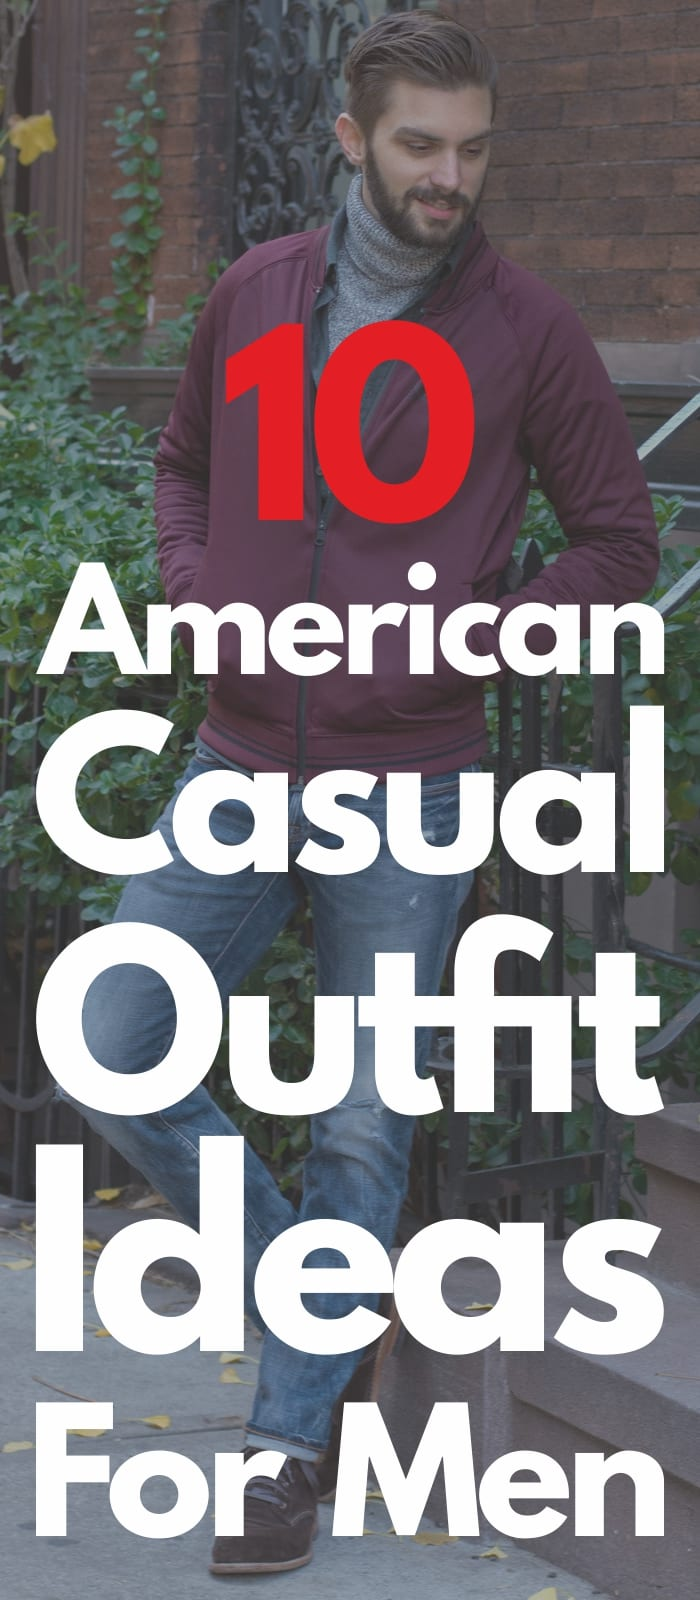 10 American Casual Outfit Ideas For Men